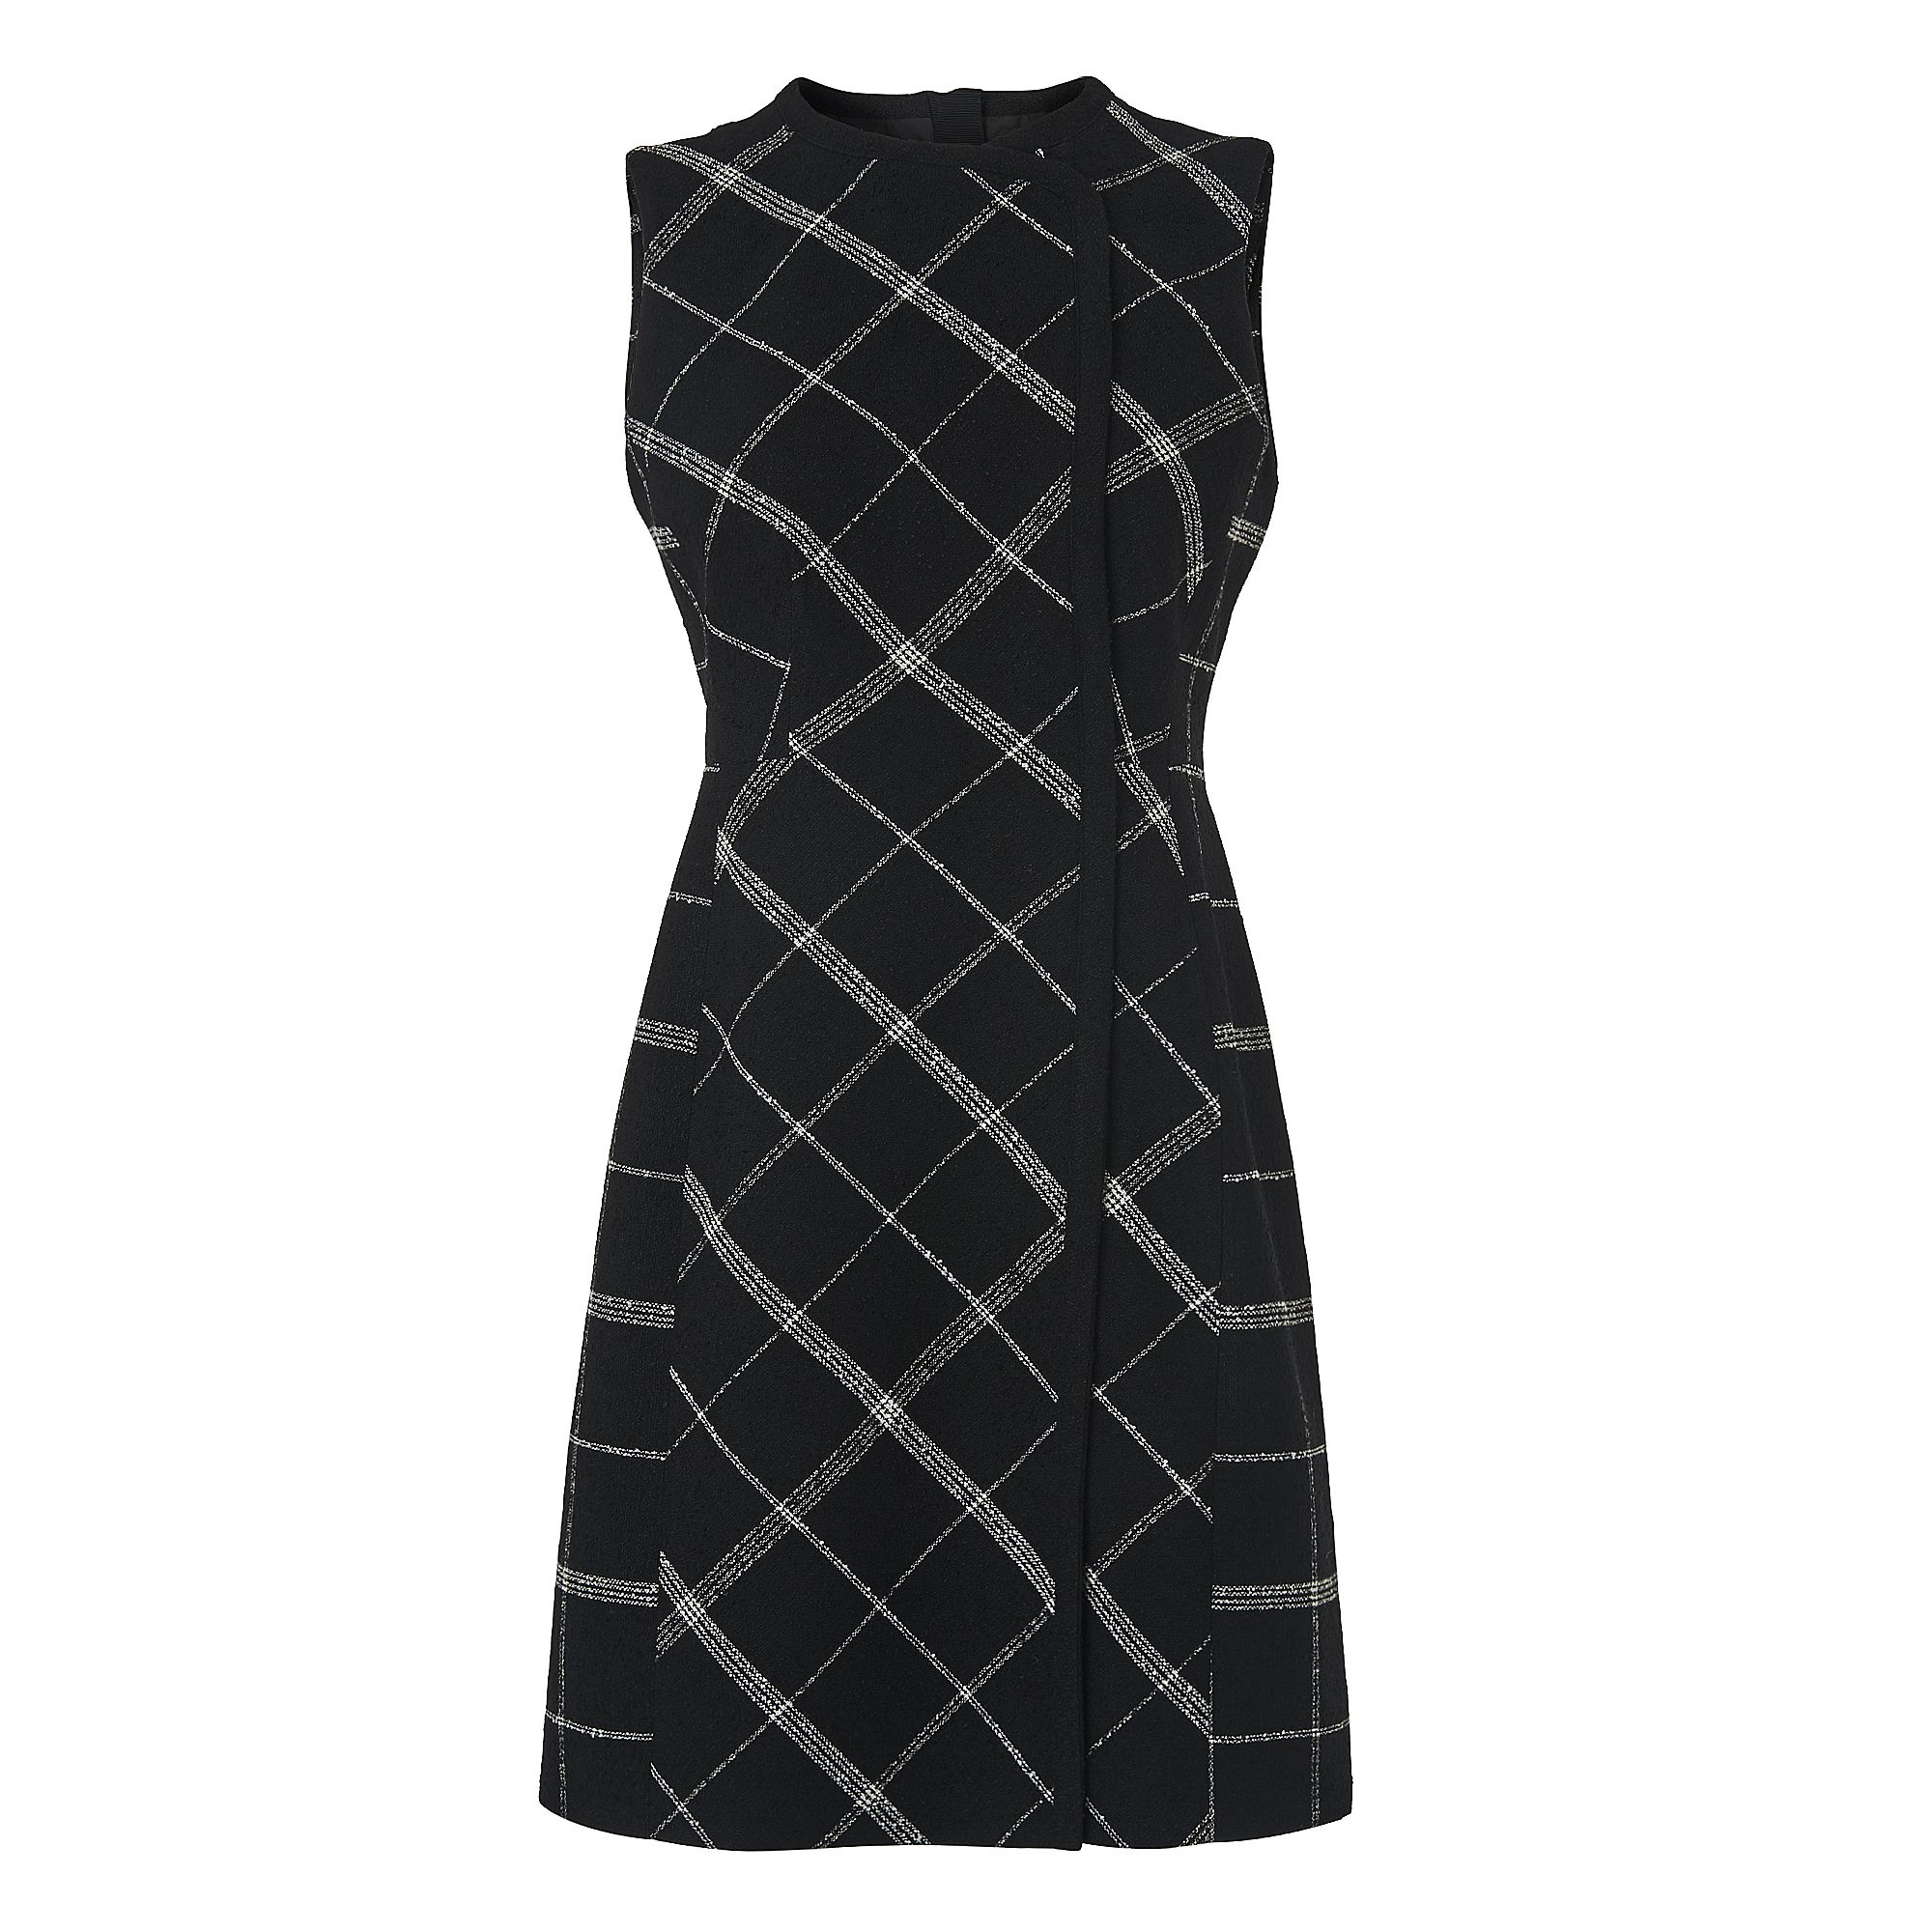 L.K. Bennett Zuri Black Check Wool Mix Dress, Black Multi